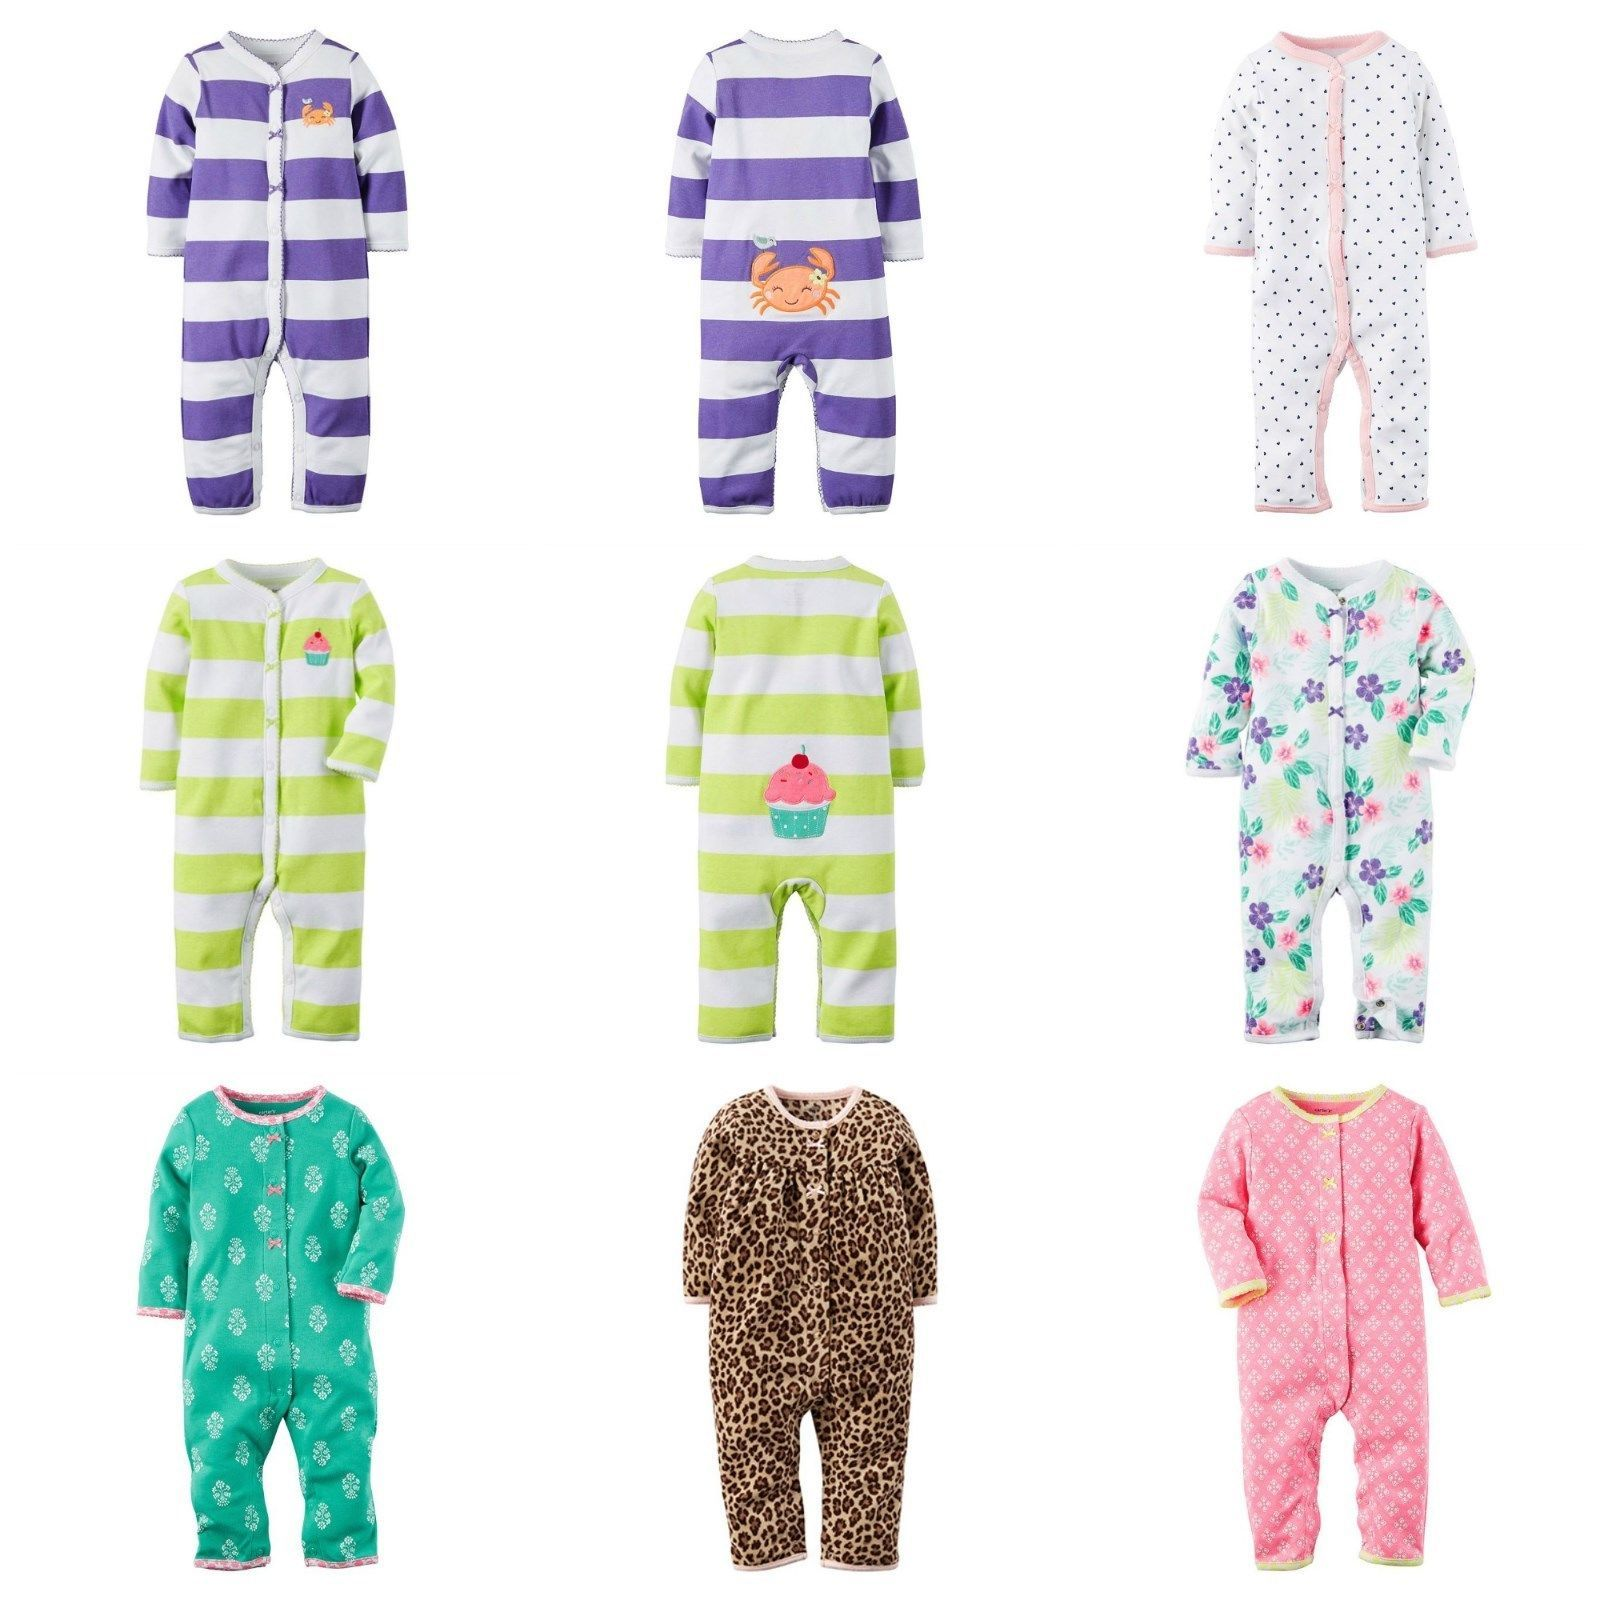 a614412a1 NWT Carters Baby Girl Footless PJ Coveralls and 13 similar items